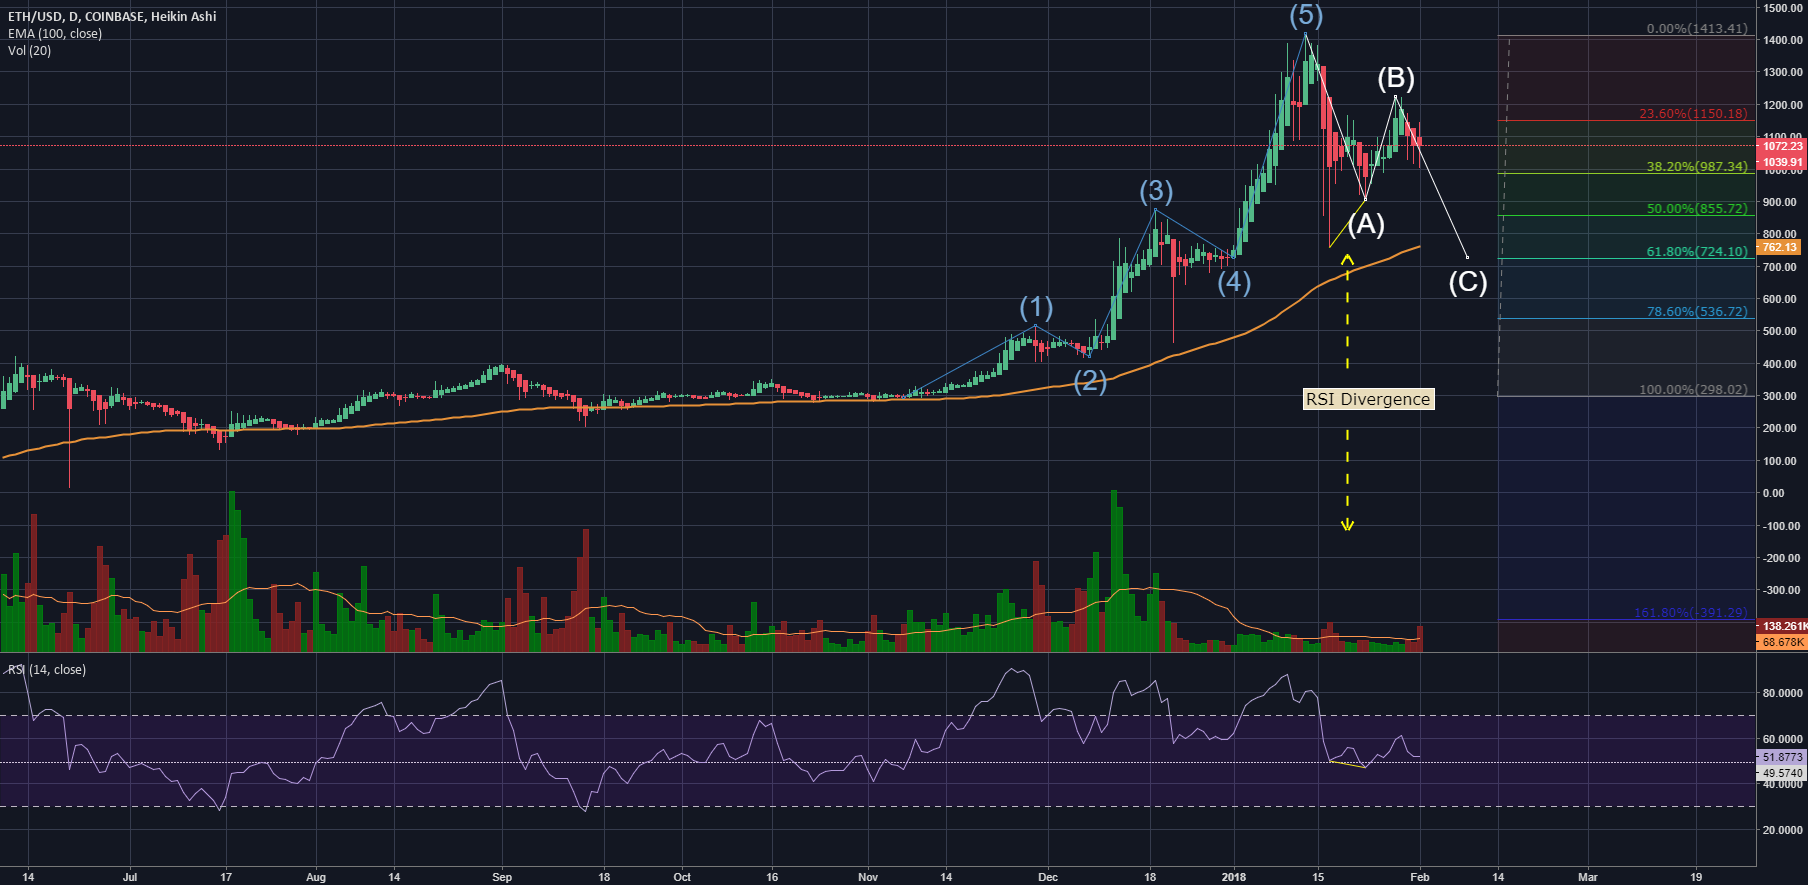 ETHUSD on the C wave